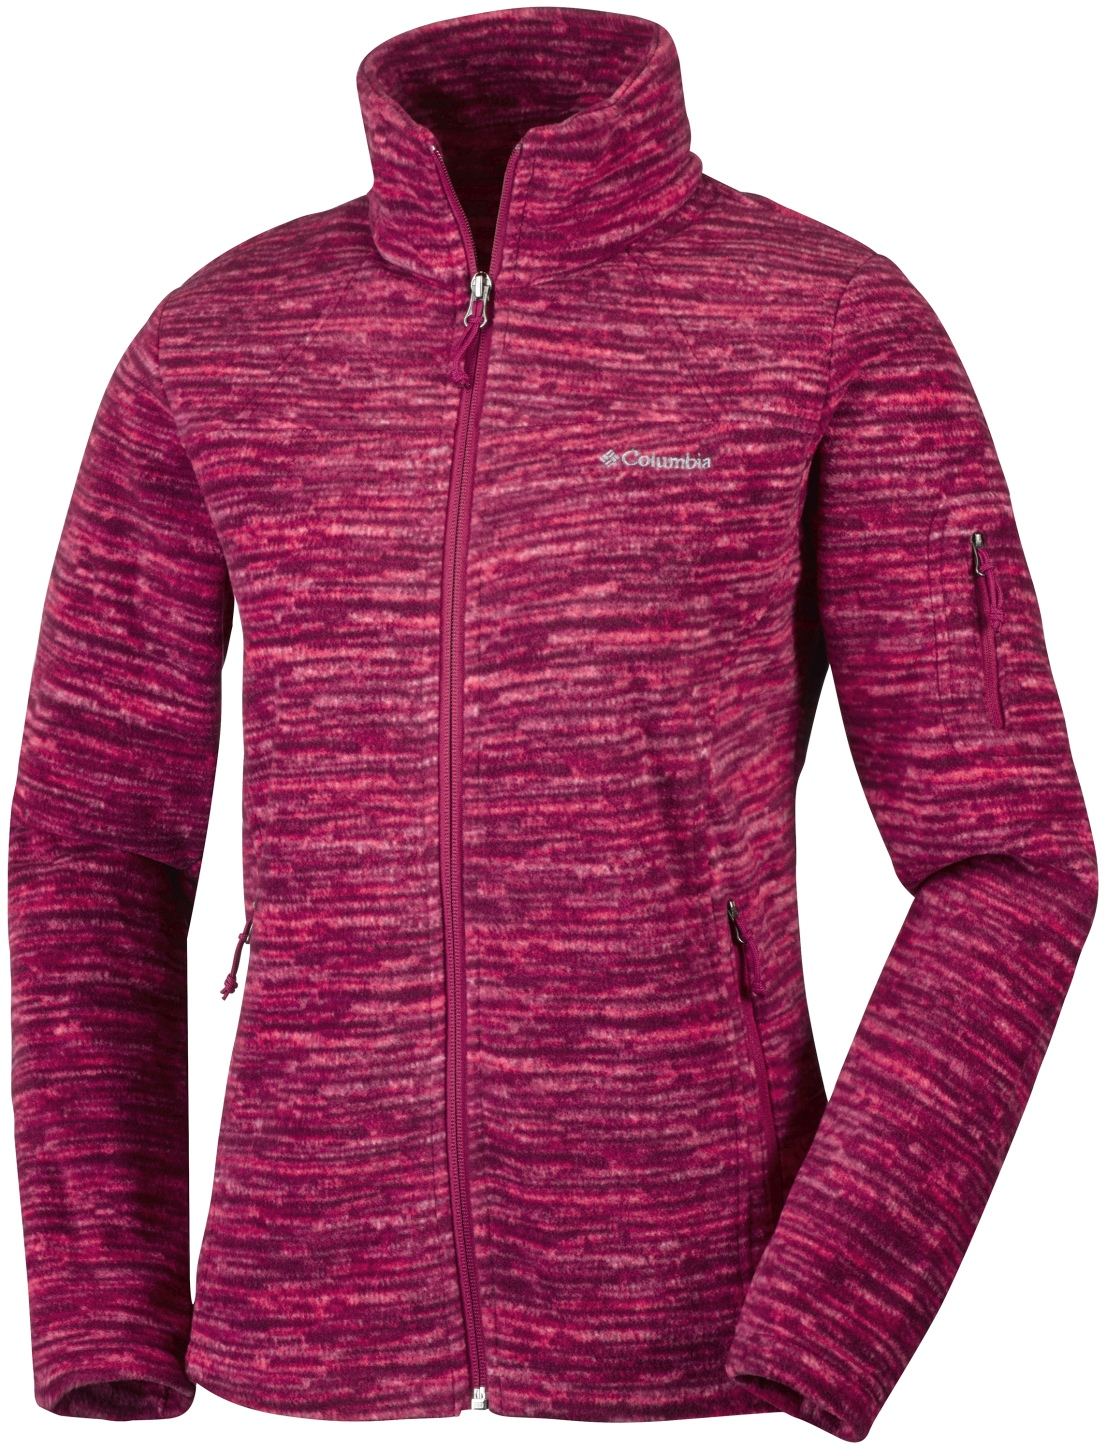 Columbia Women's Fast Trek Printed Jacket Red Orchid Strata-30